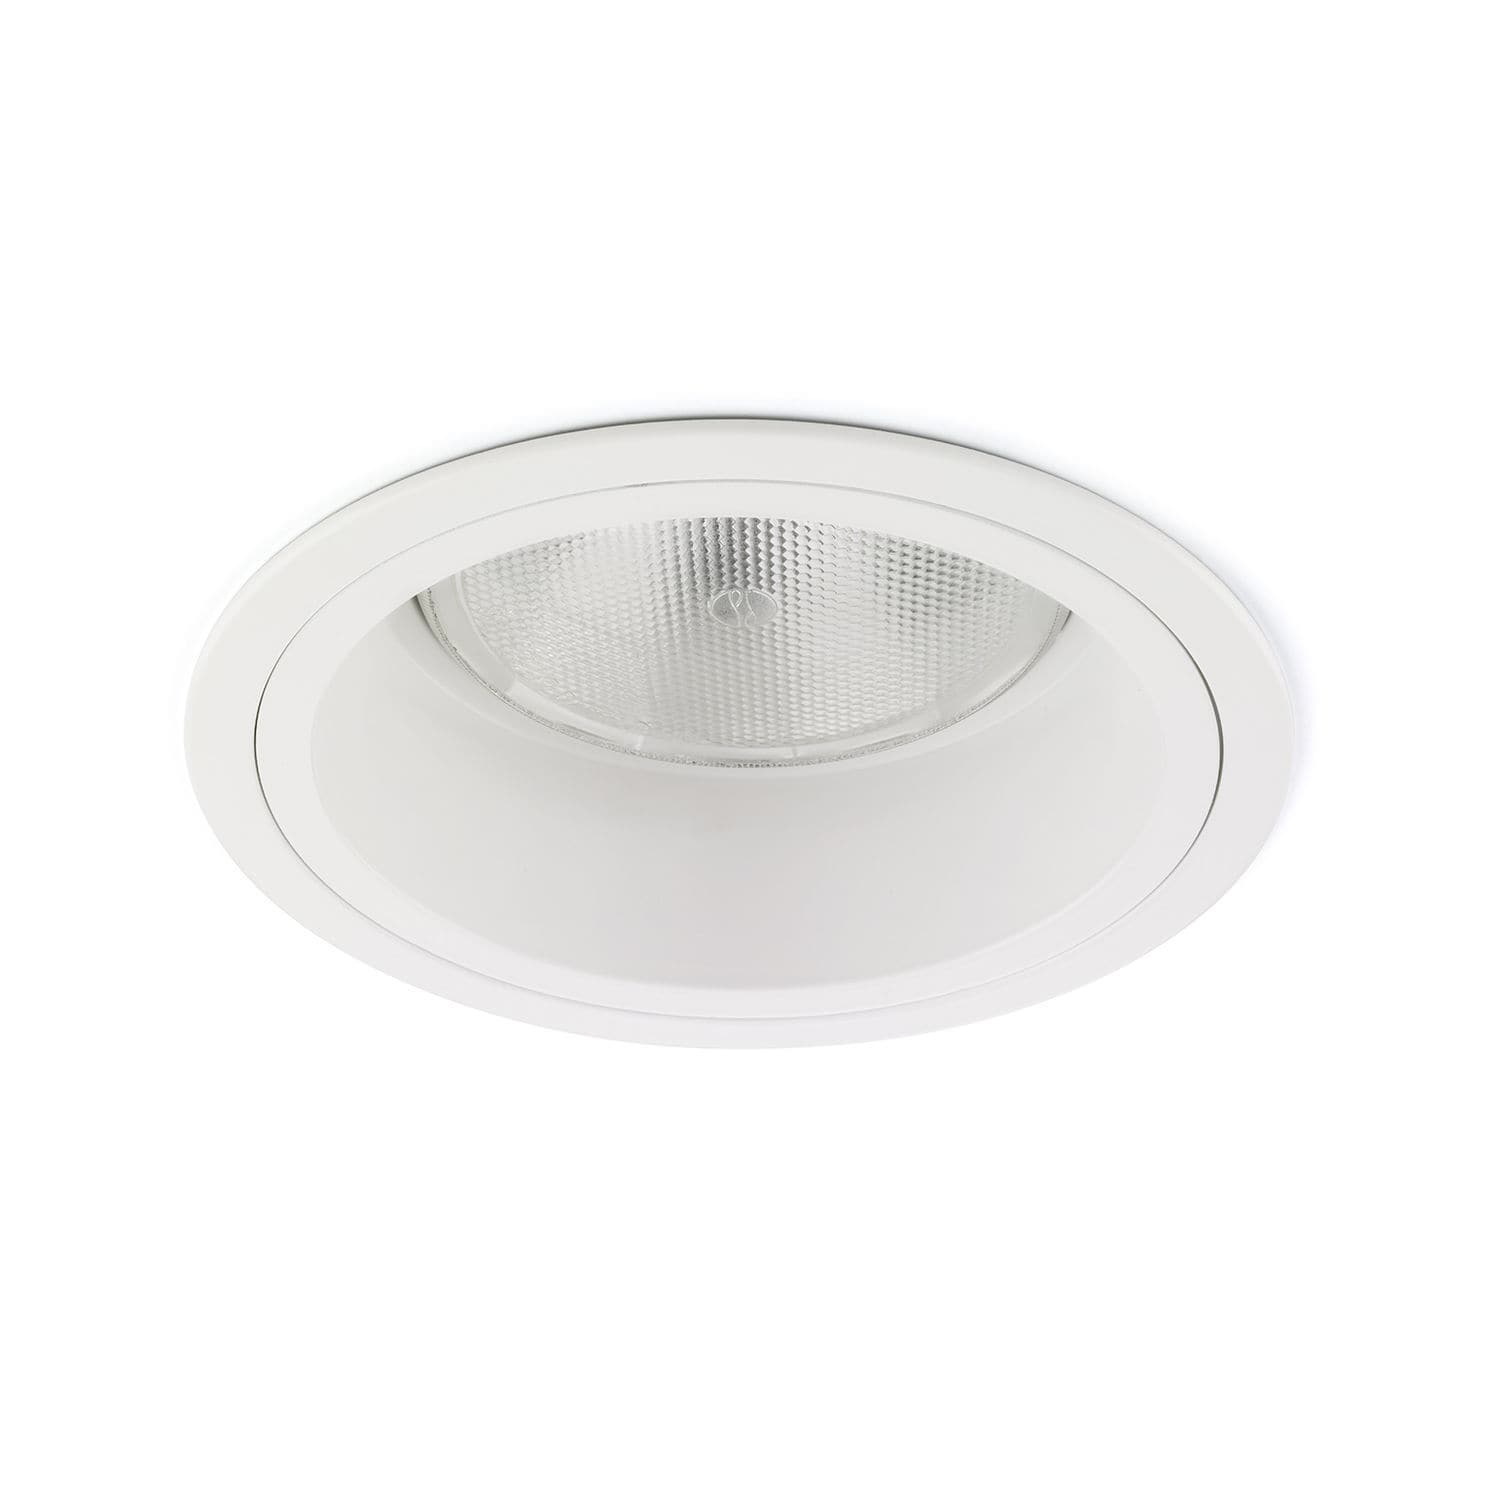 Recessed downlight led halogen hid unisio reggiani